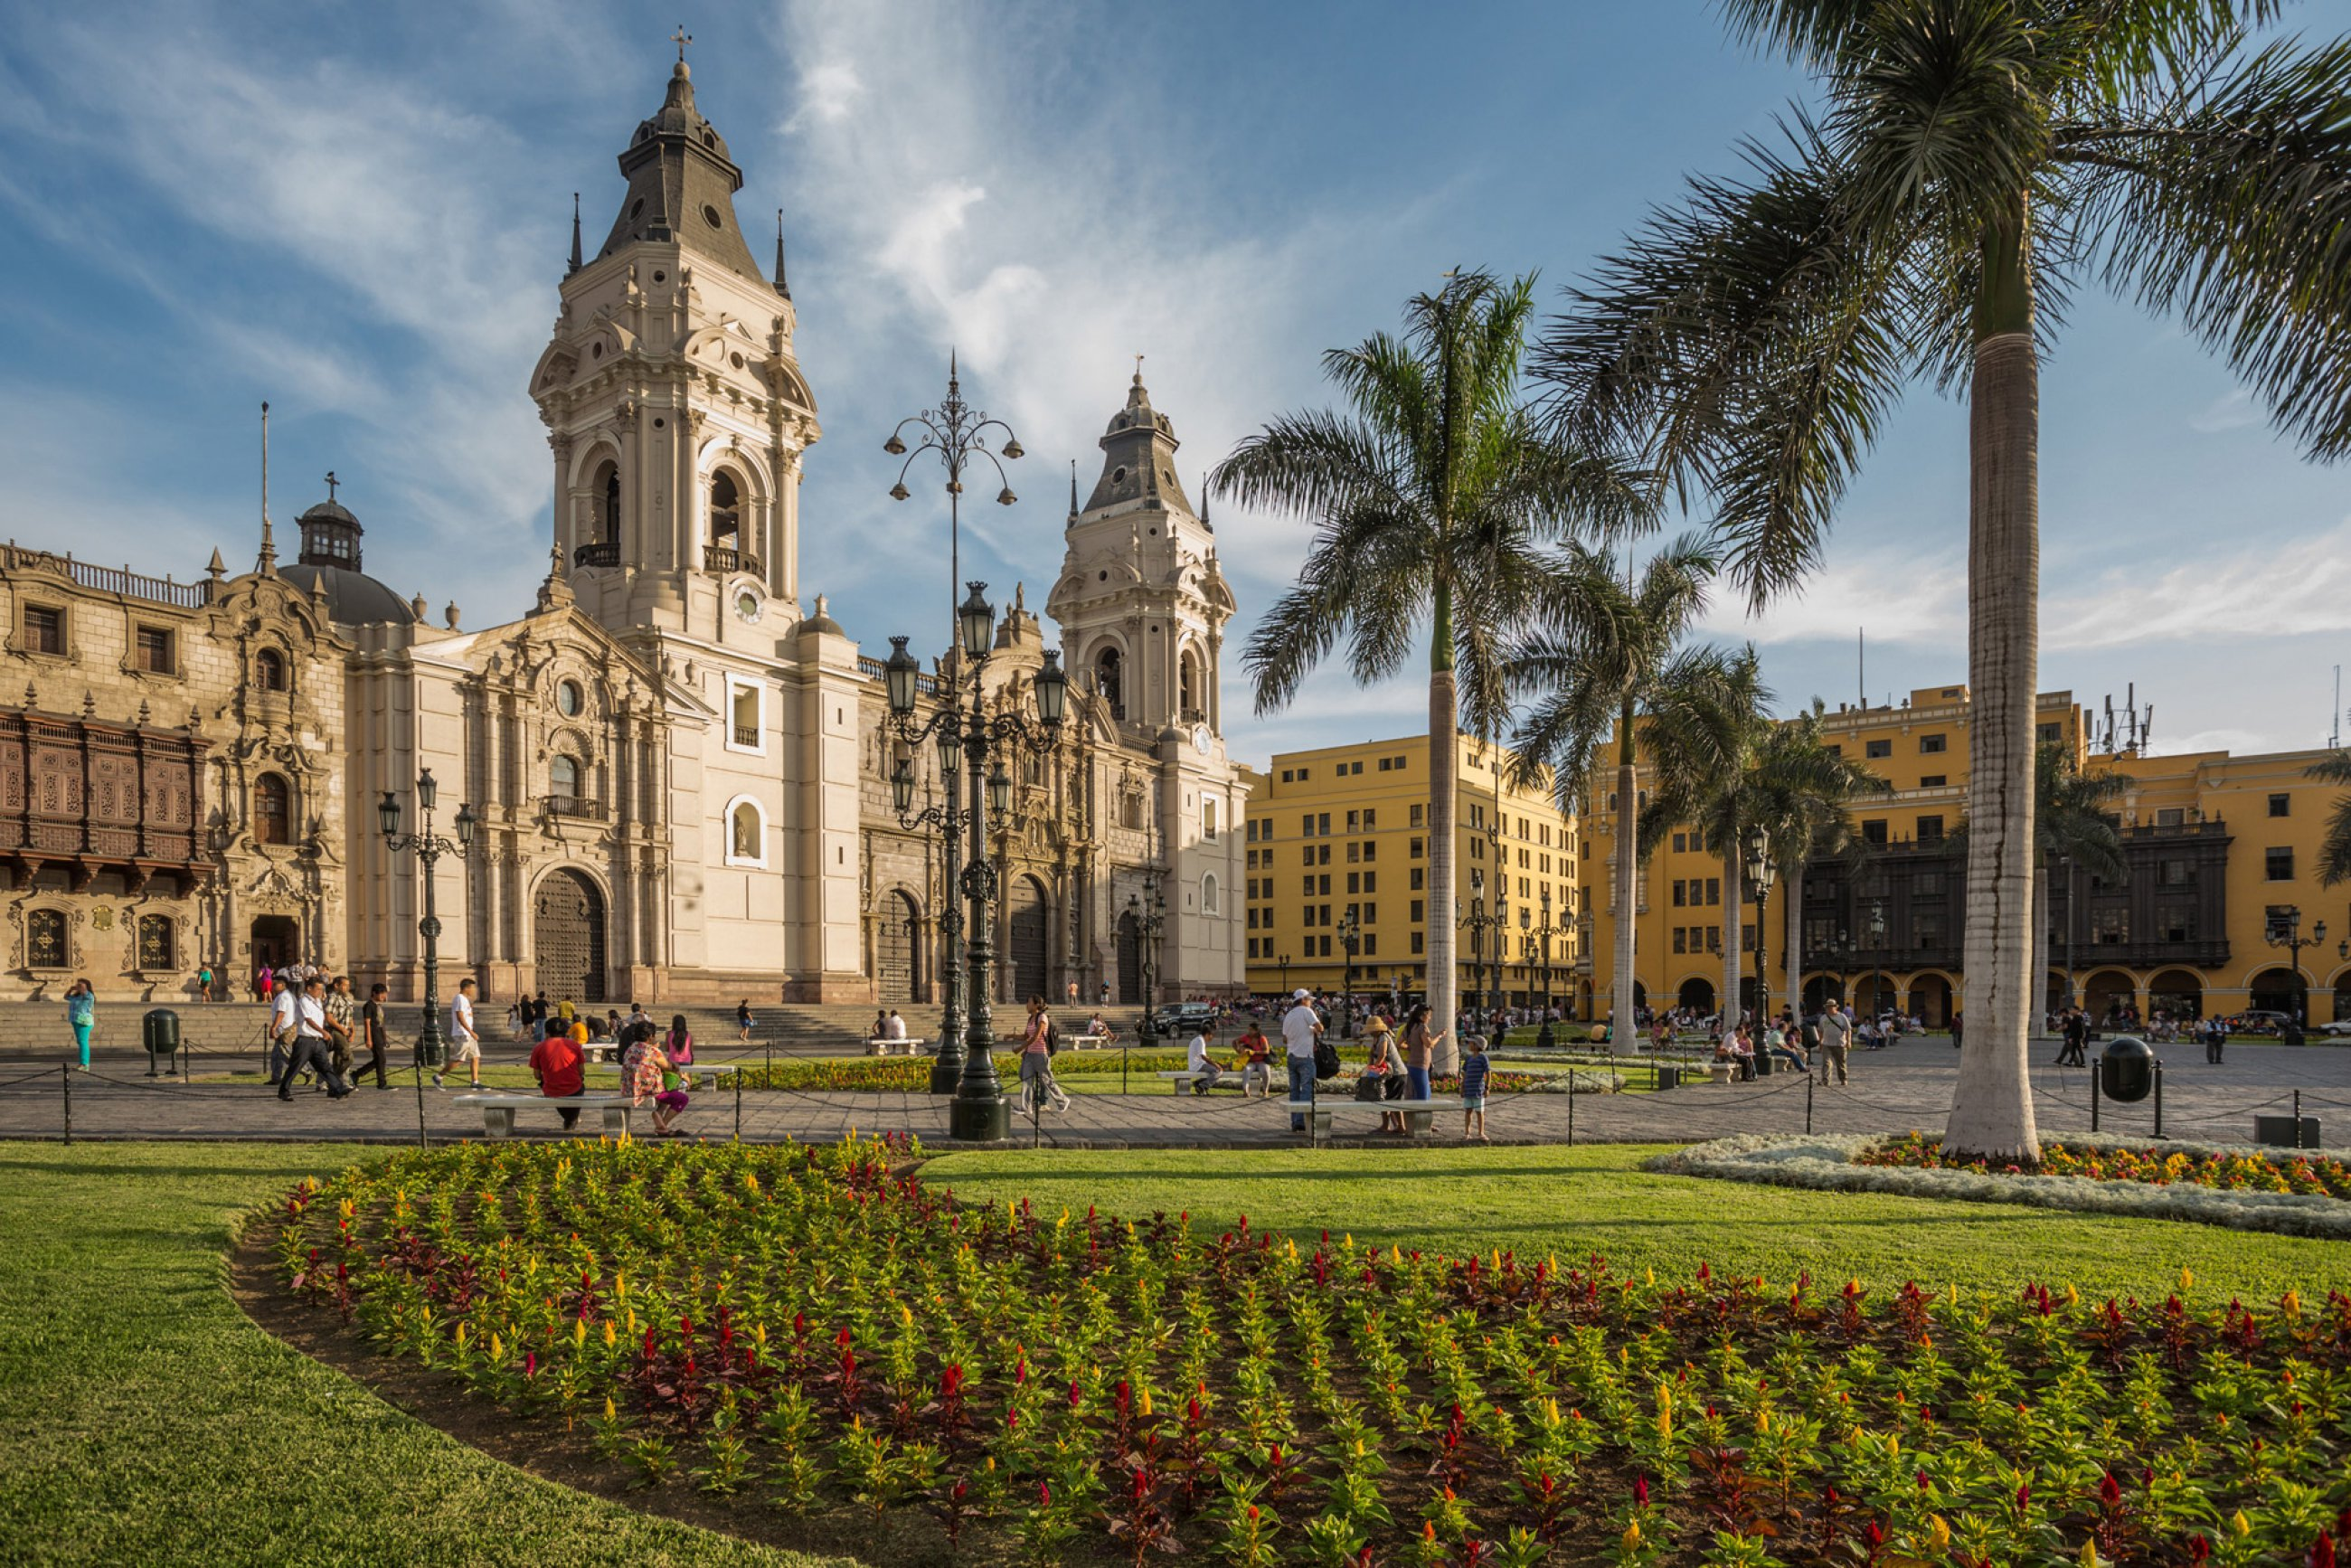 https://bubo.sk/uploads/galleries/16334/peru-lima-shutterstock-181523507.jpg